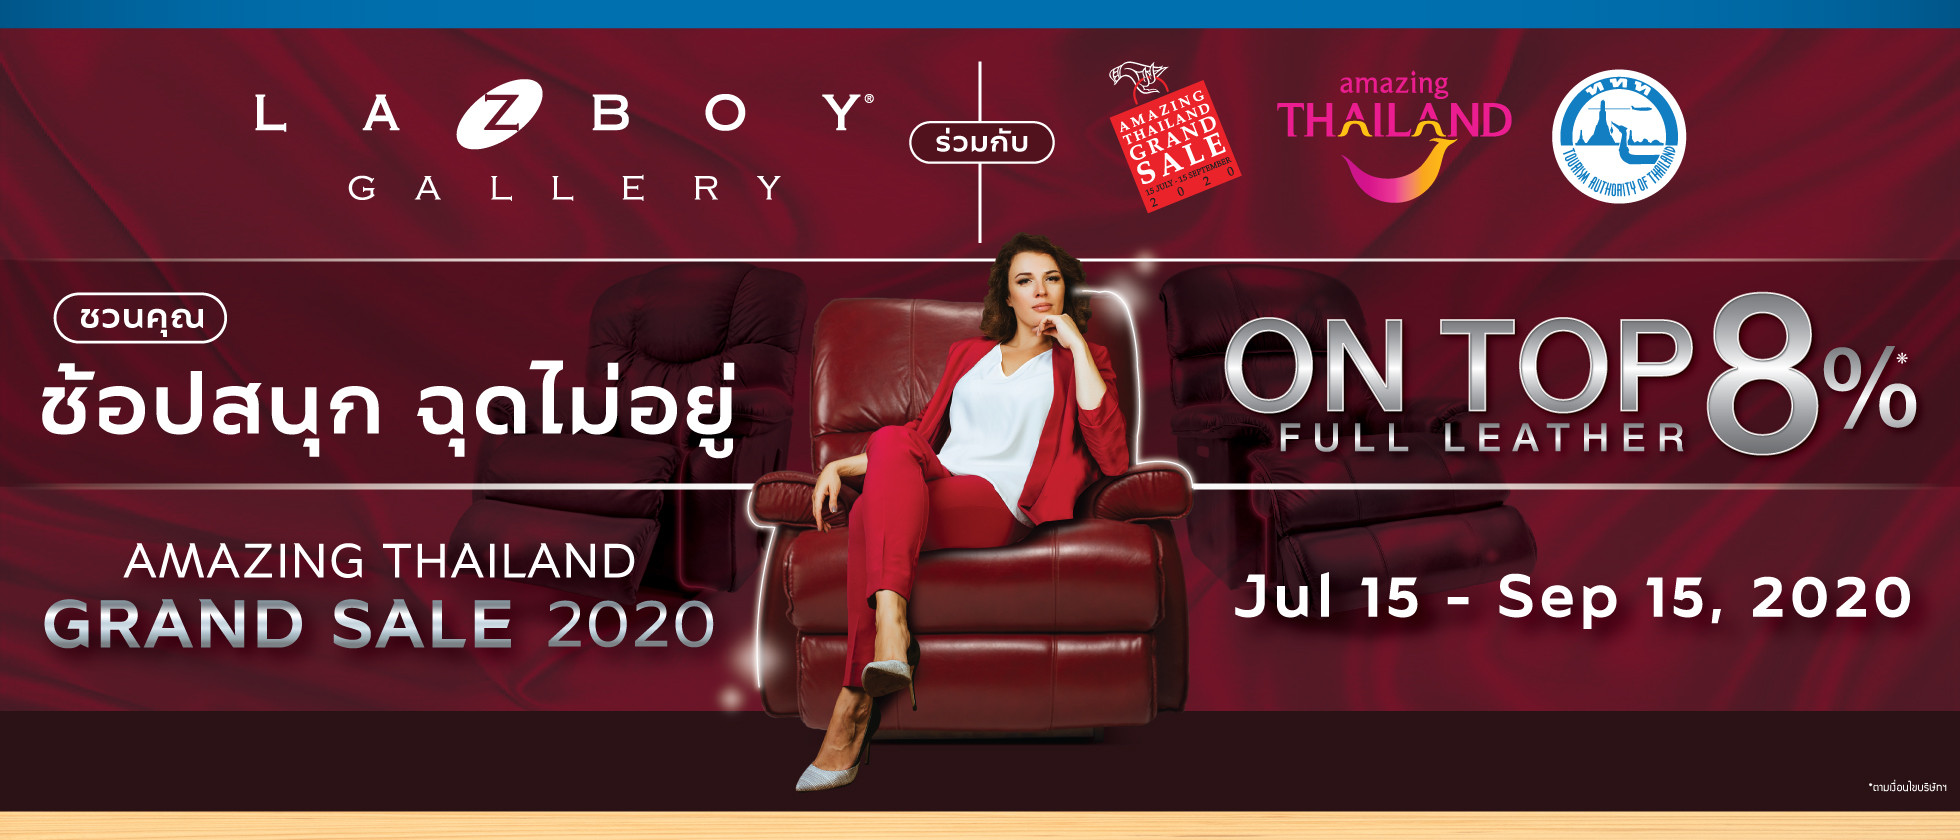 Amazing Thailand Grand Sale 2020